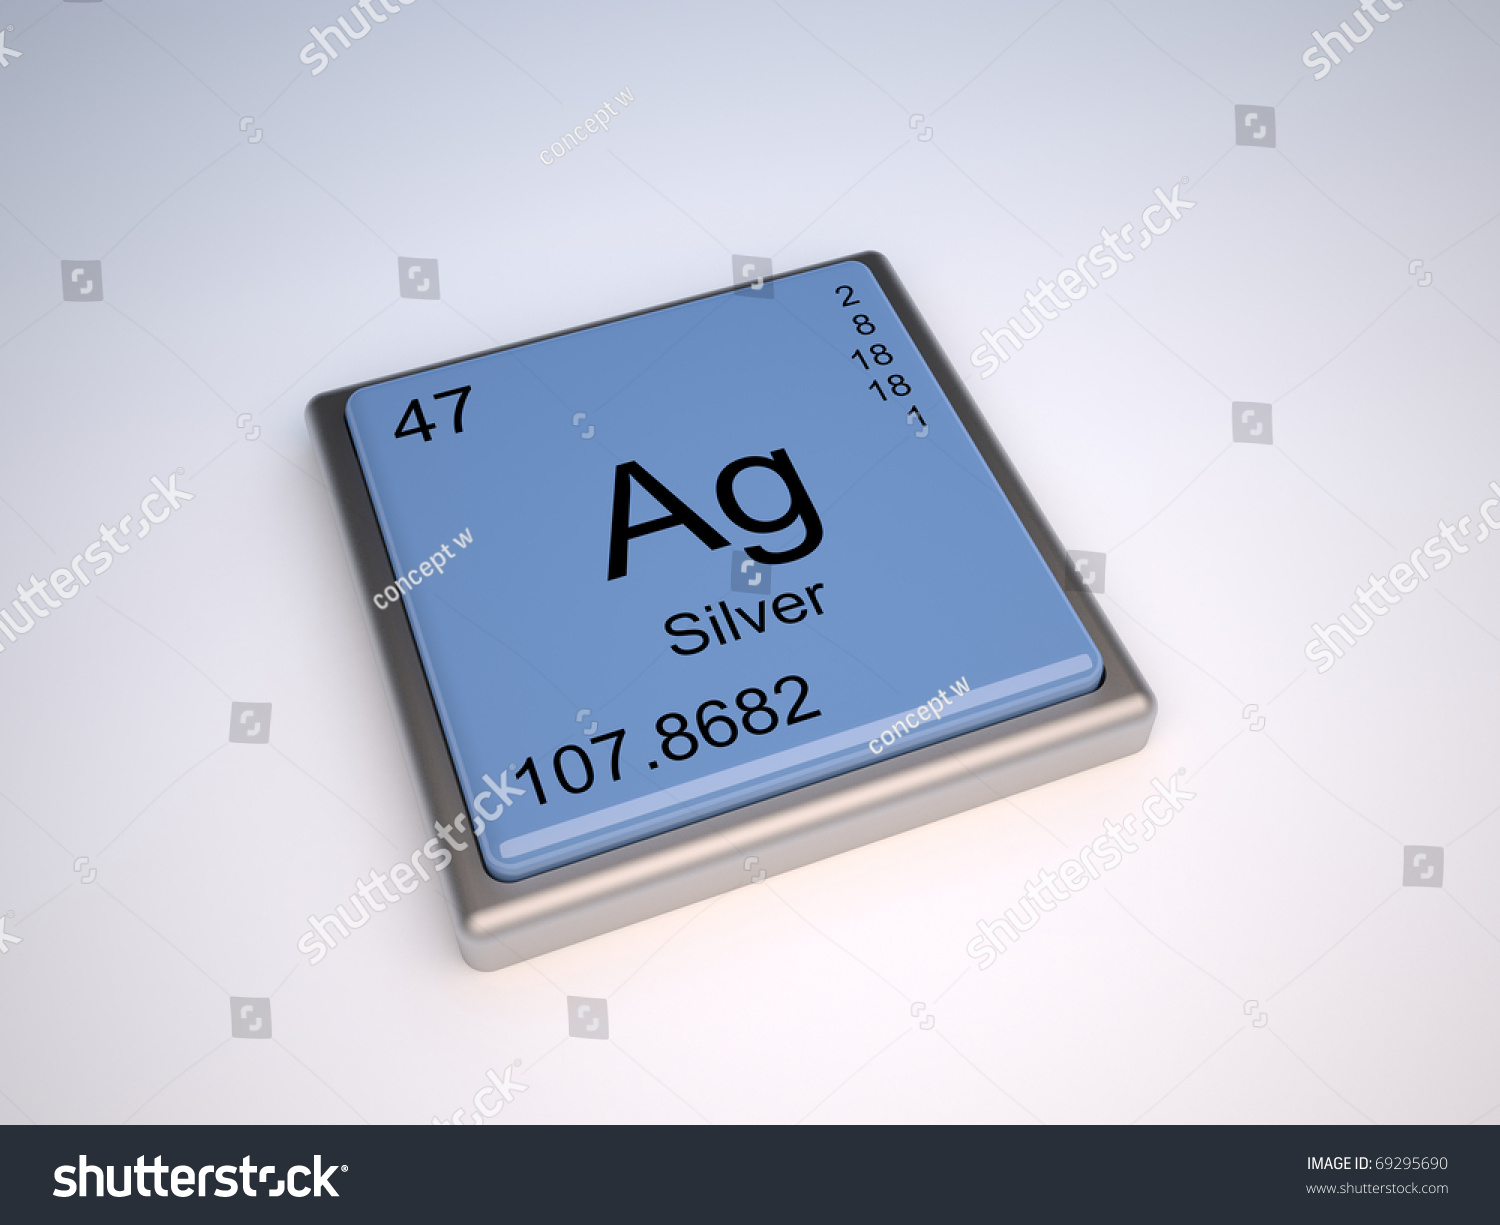 Silver chemical element periodic table symbol stock illustration silver chemical element of the periodic table with symbol ag urtaz Image collections